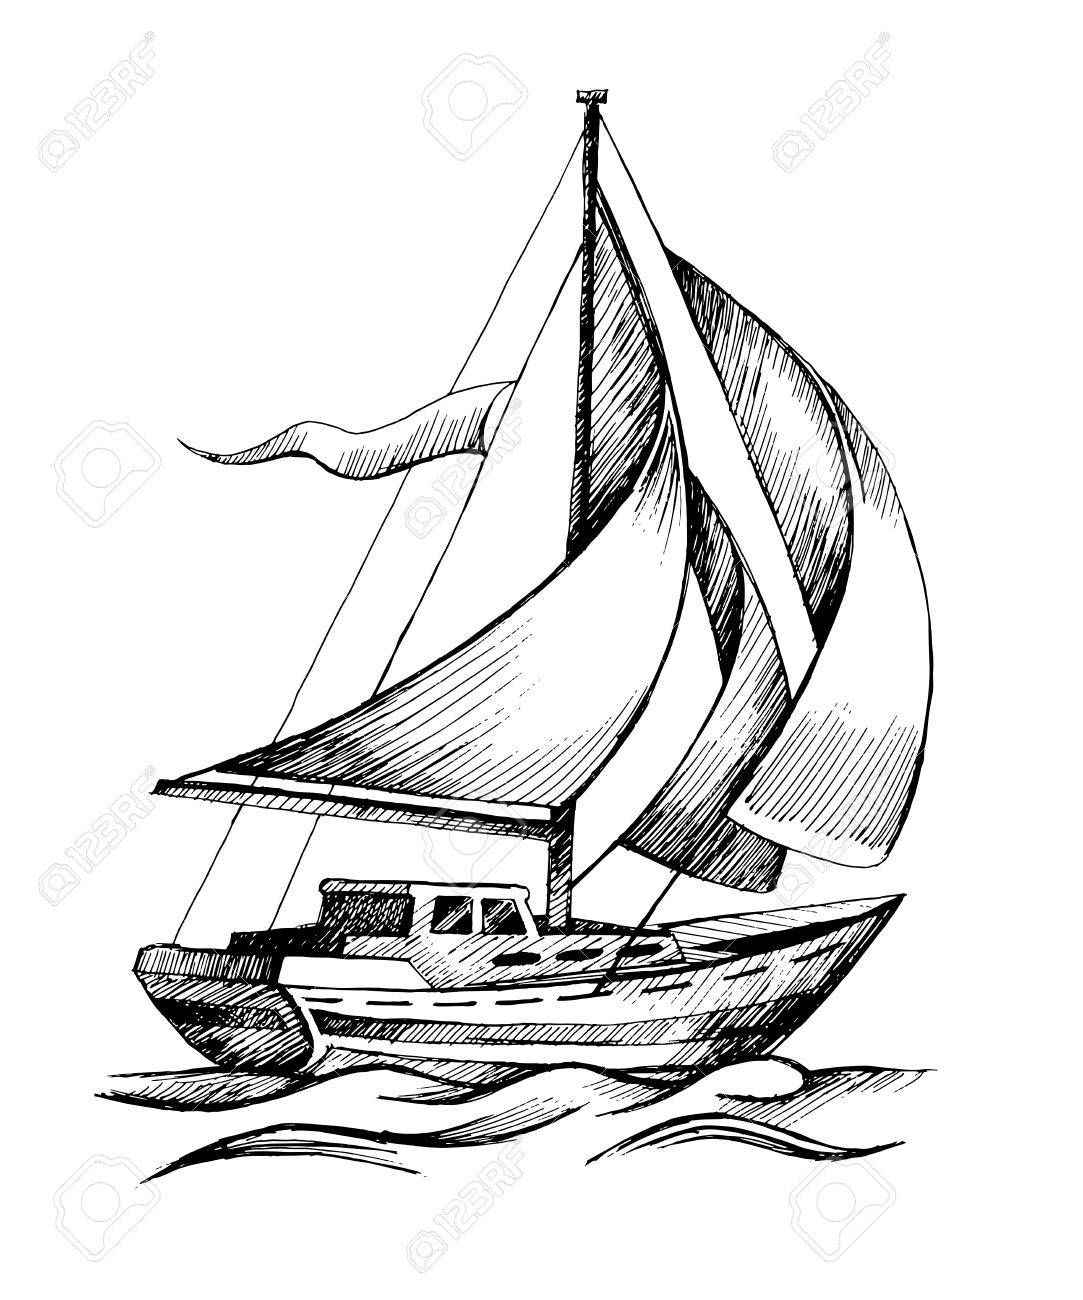 Sailboat Drawing Sketch Sailing Ship Vector Sketch Isolated With